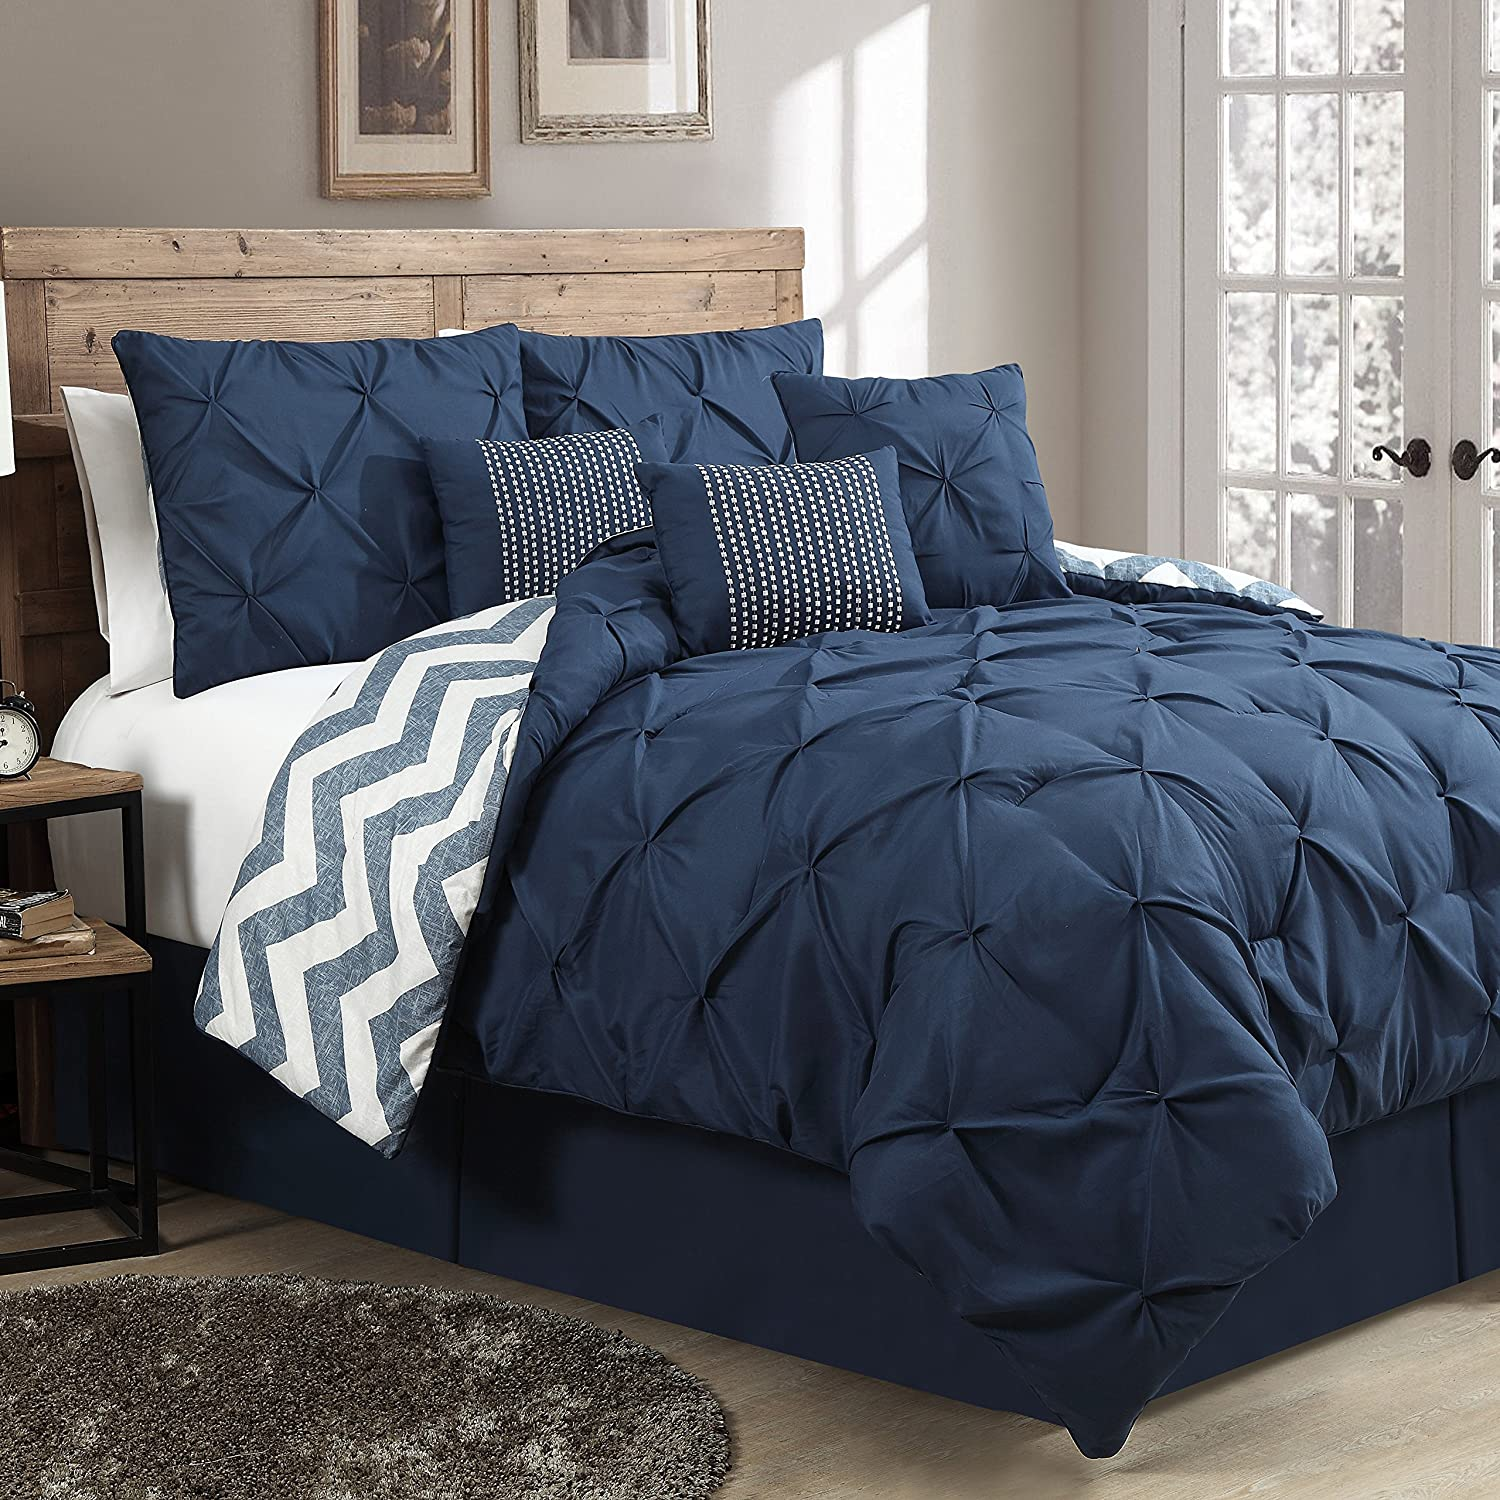 Navy Bedding and Navy Quilts – Ease Bedding with Style